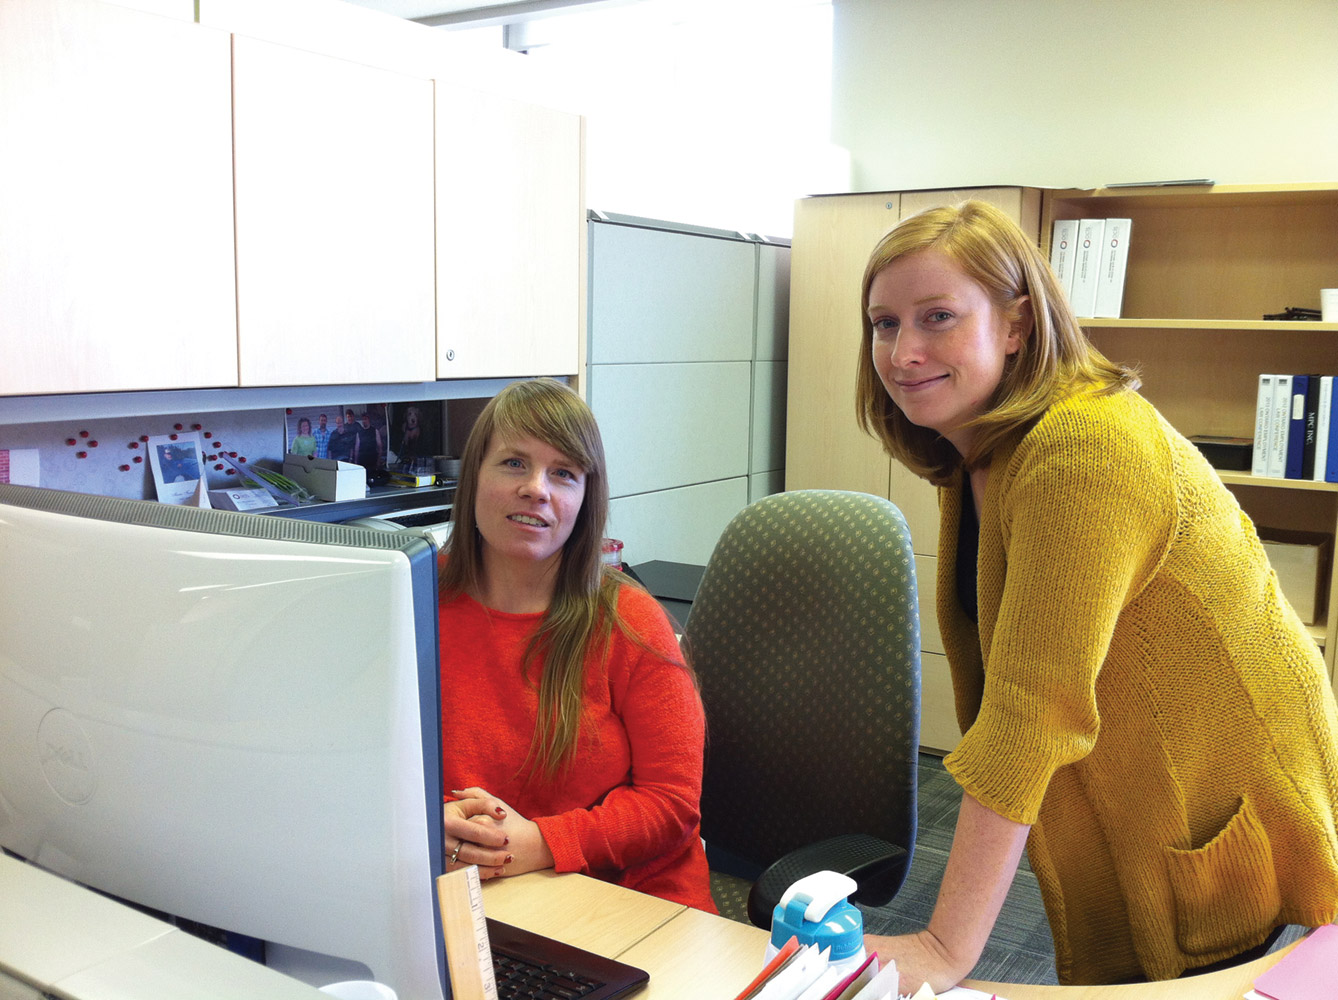 Members of Ontario's Colleges Library Service (OCLS) work using their O3 online collaboration portal.